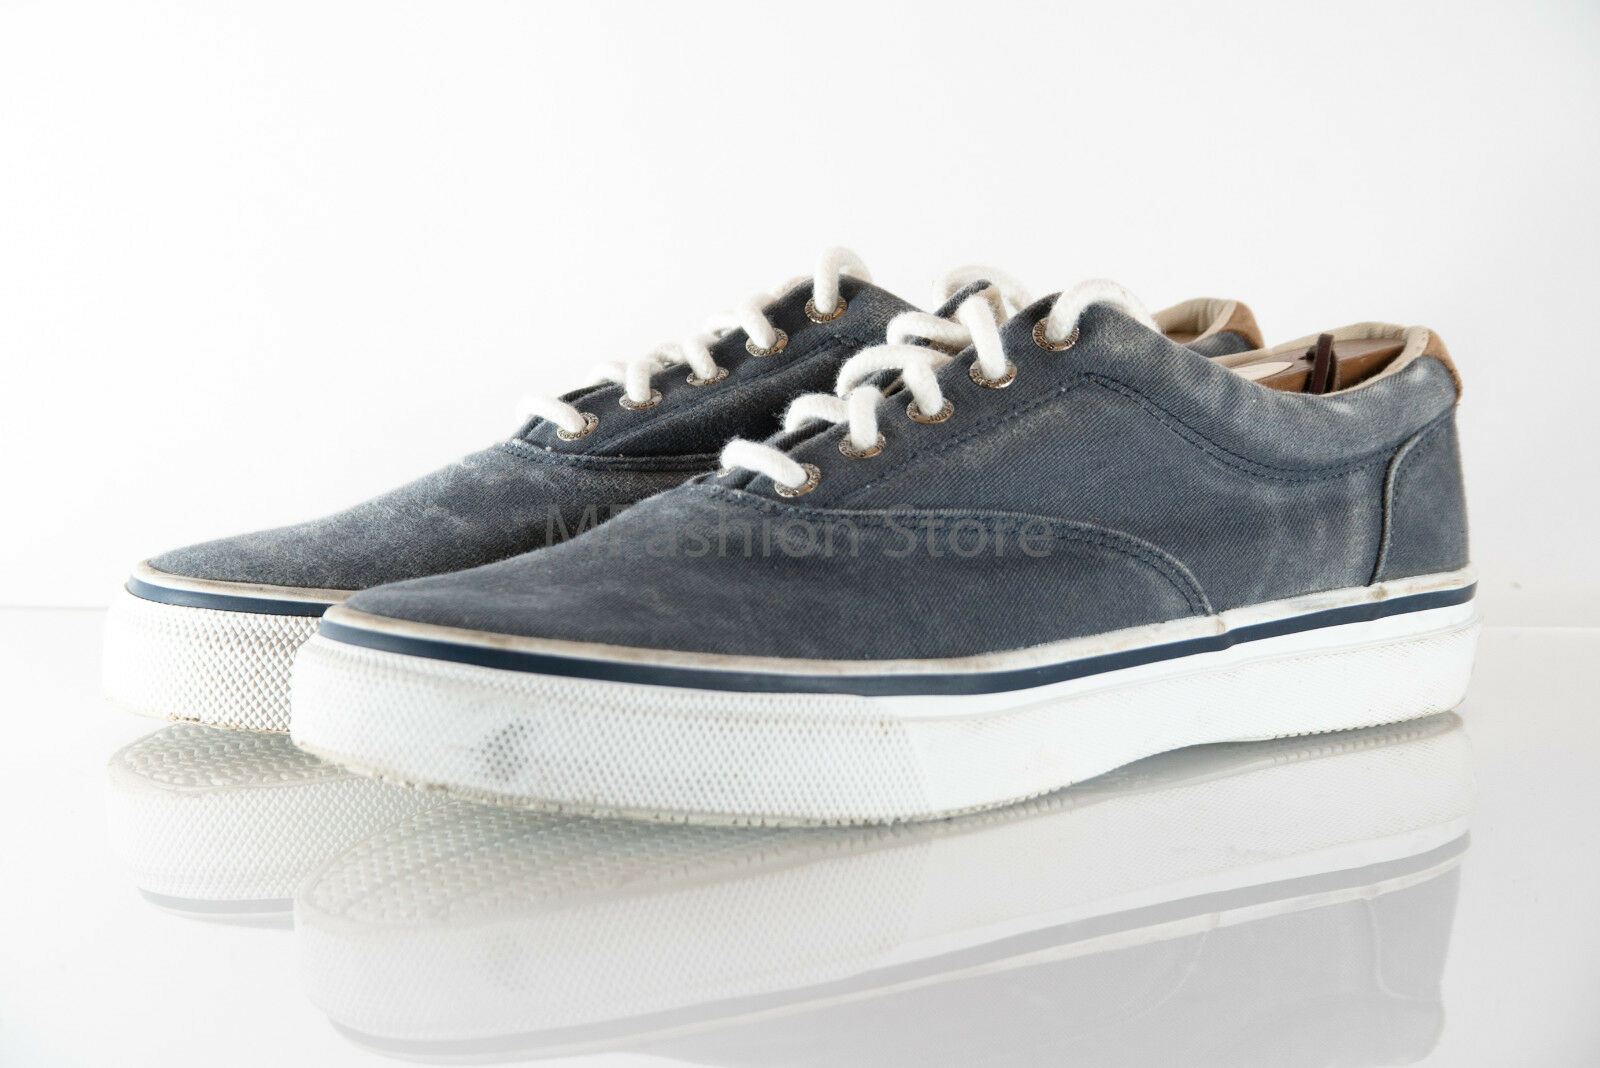 Sperry bluee Cotton Upper Lace Up CH171 Mens shoes Size US 10M Pre Owned Great